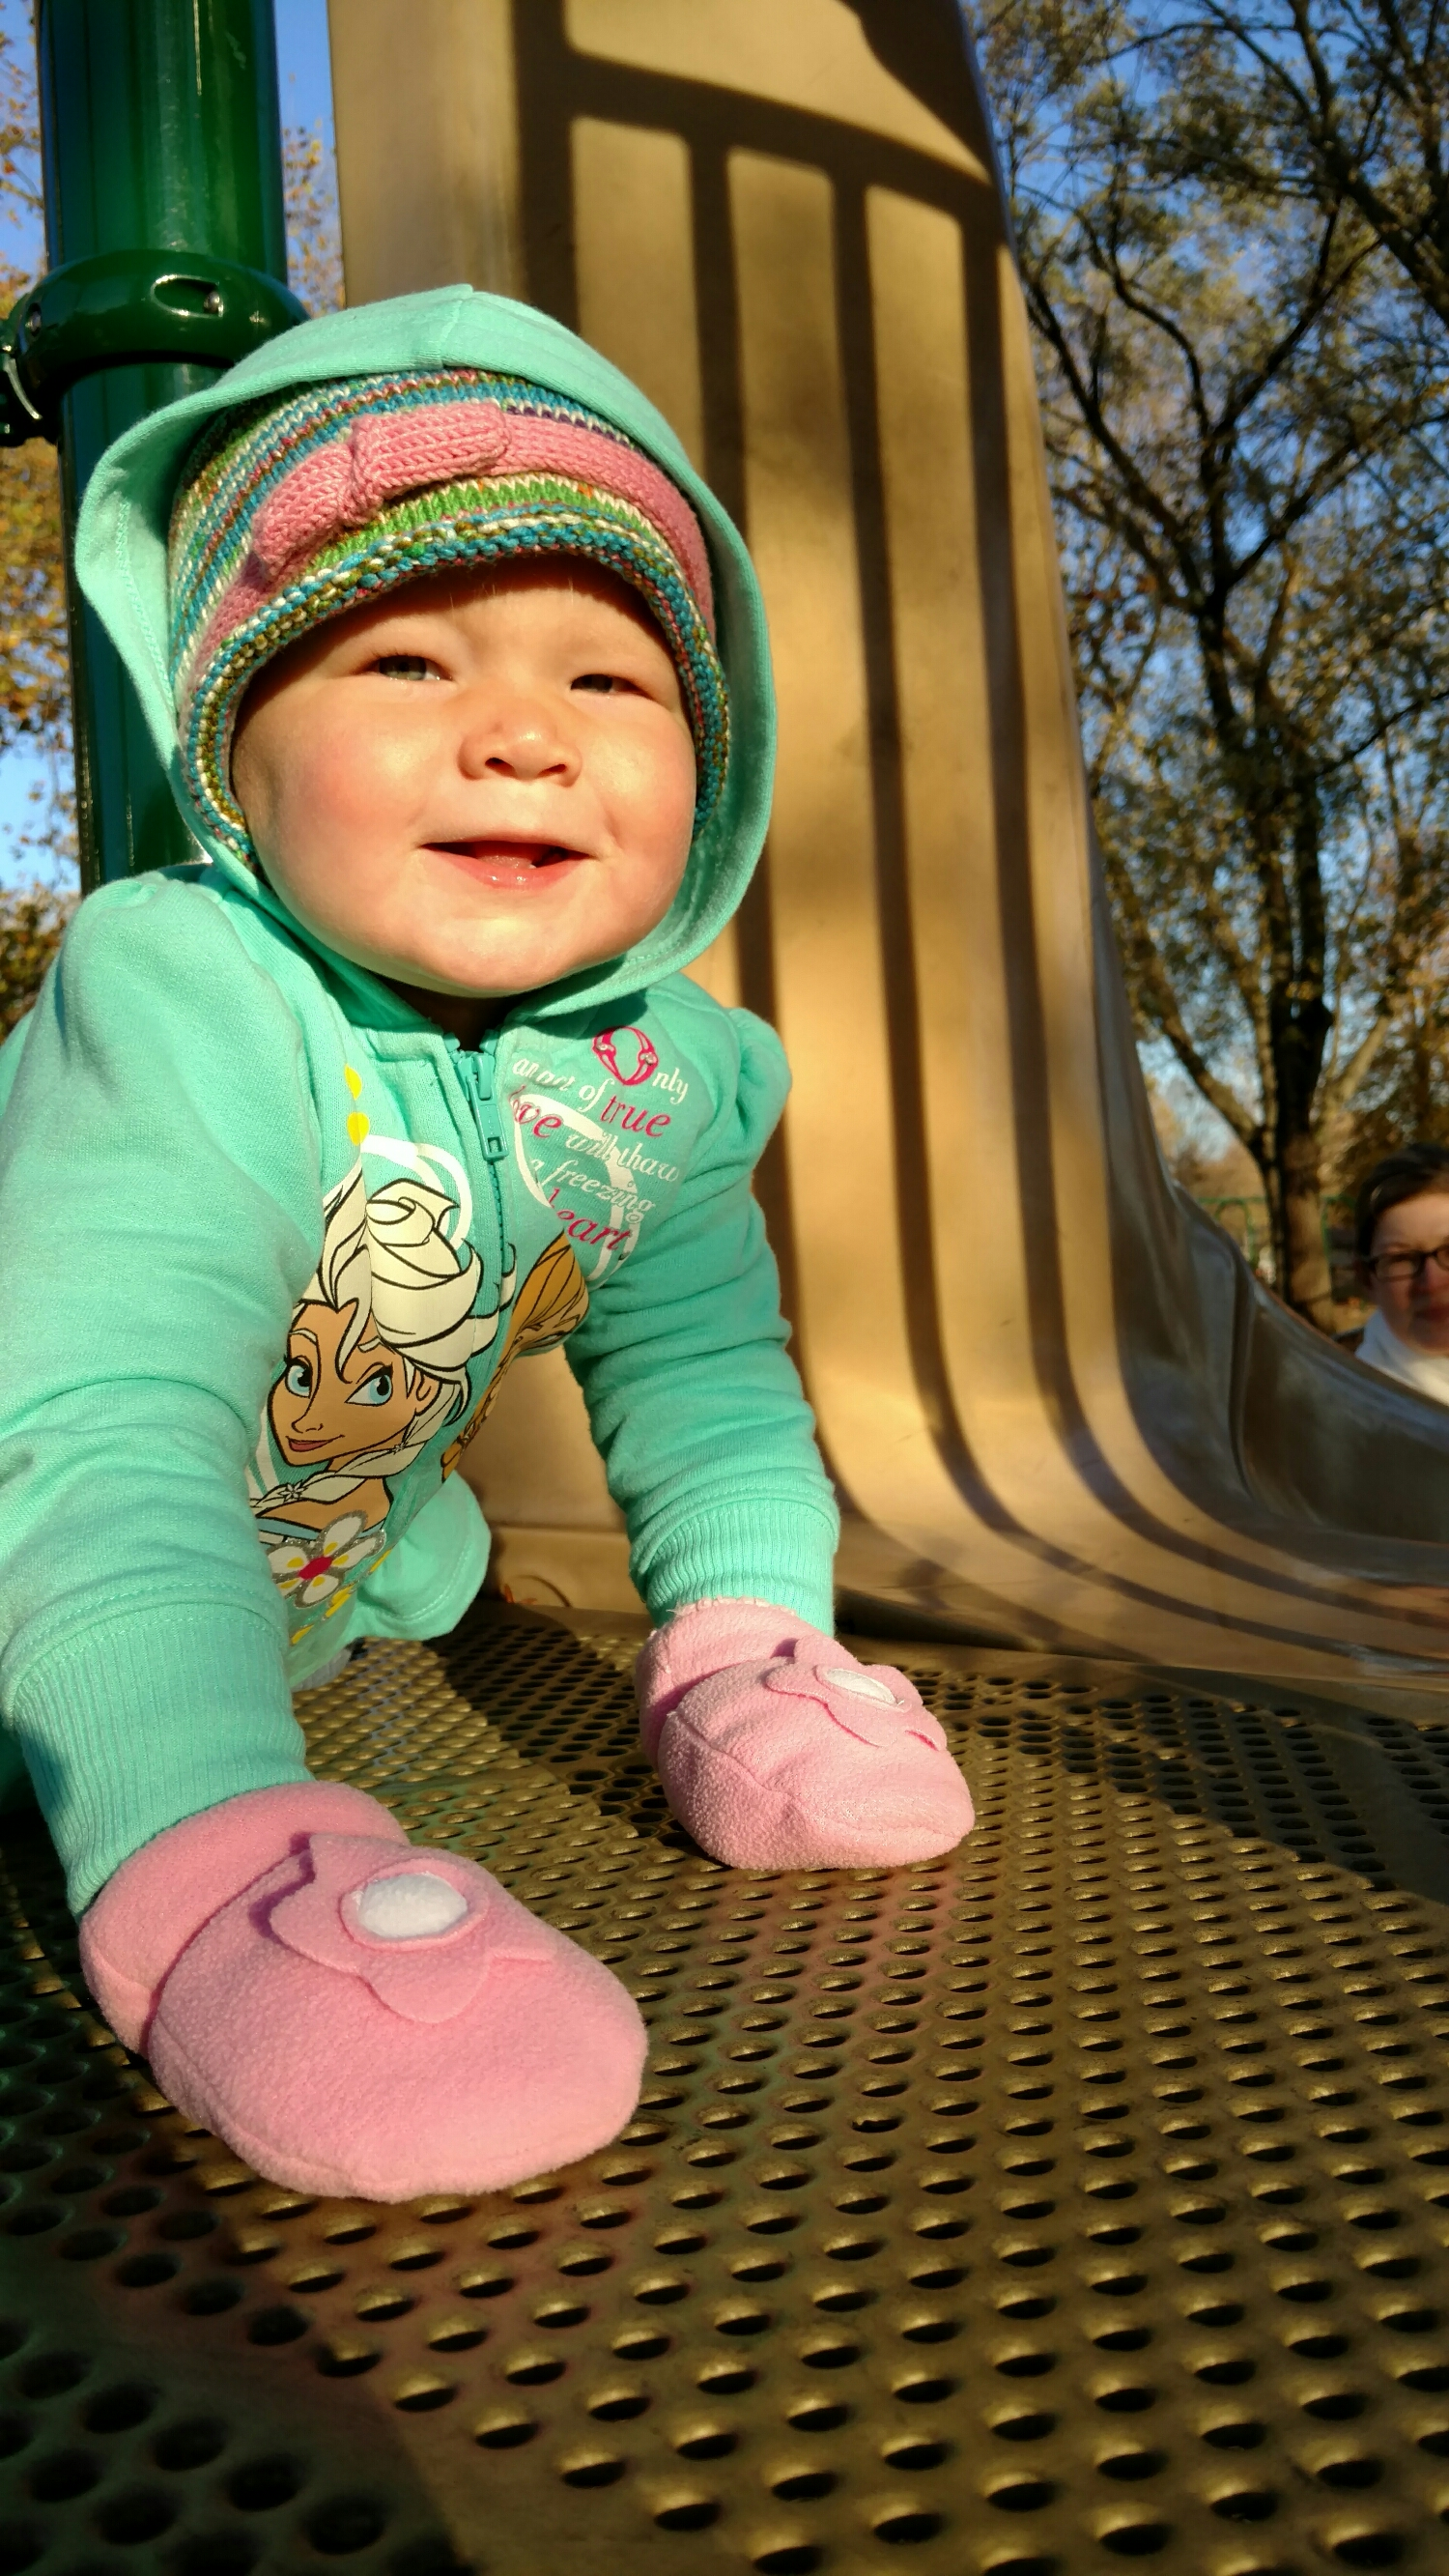 Emma likes the slide at the playground. Her life pretty much rules right now.